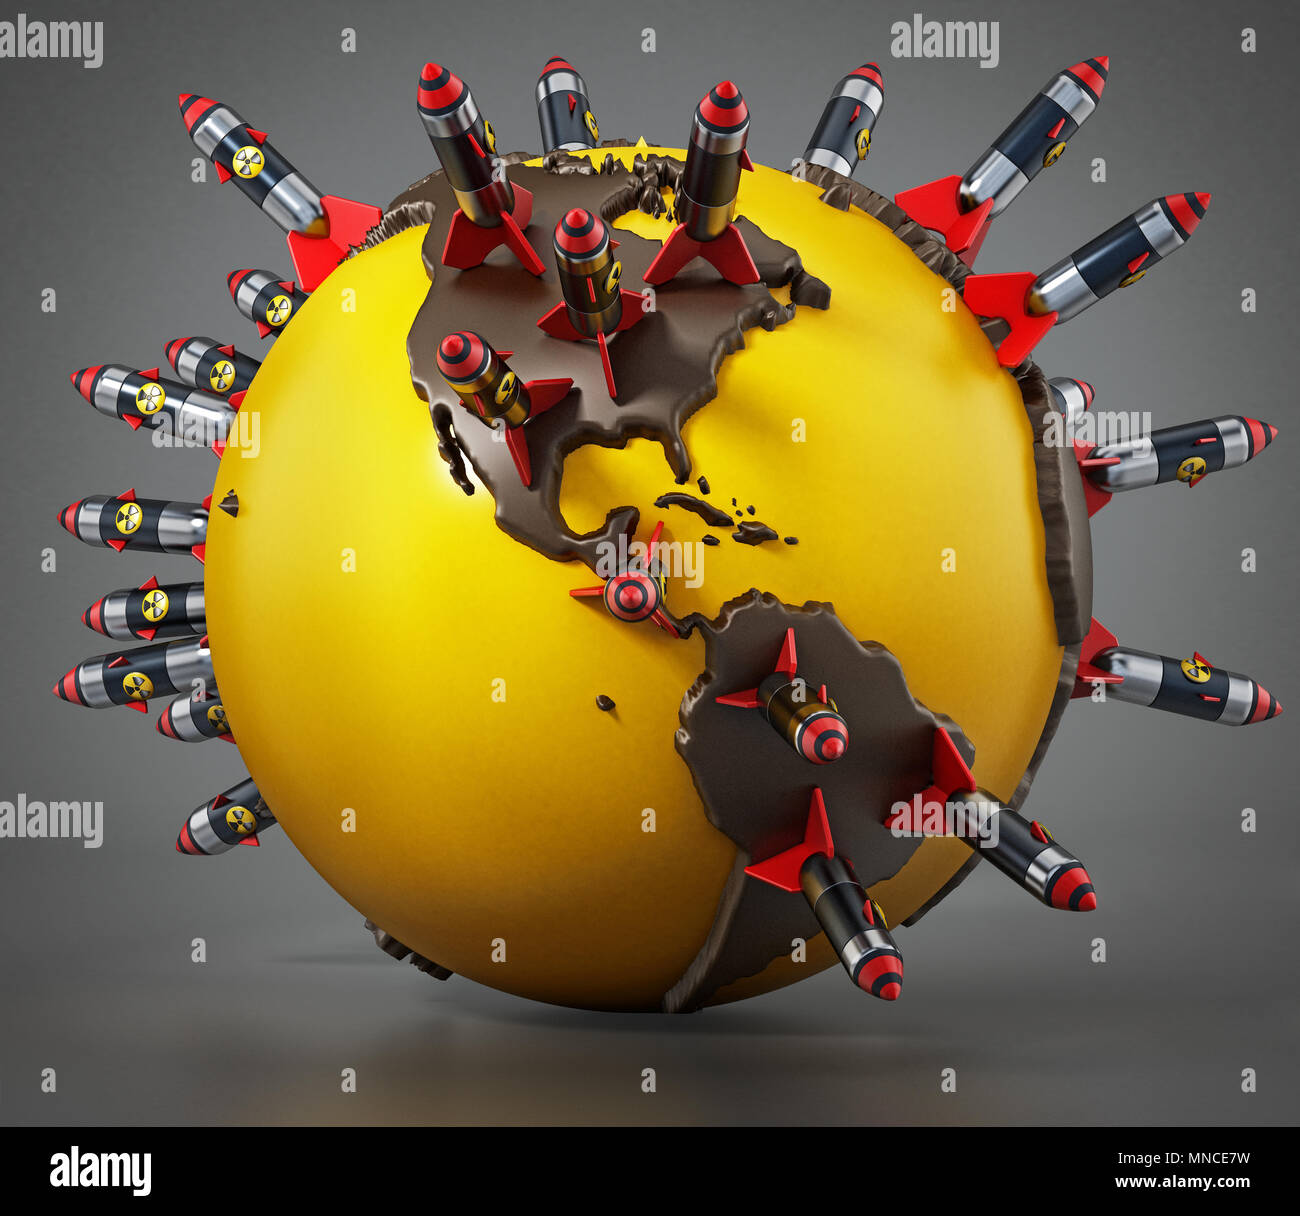 Nuclear missiles standing on world map. 3D illustration. - Stock Image